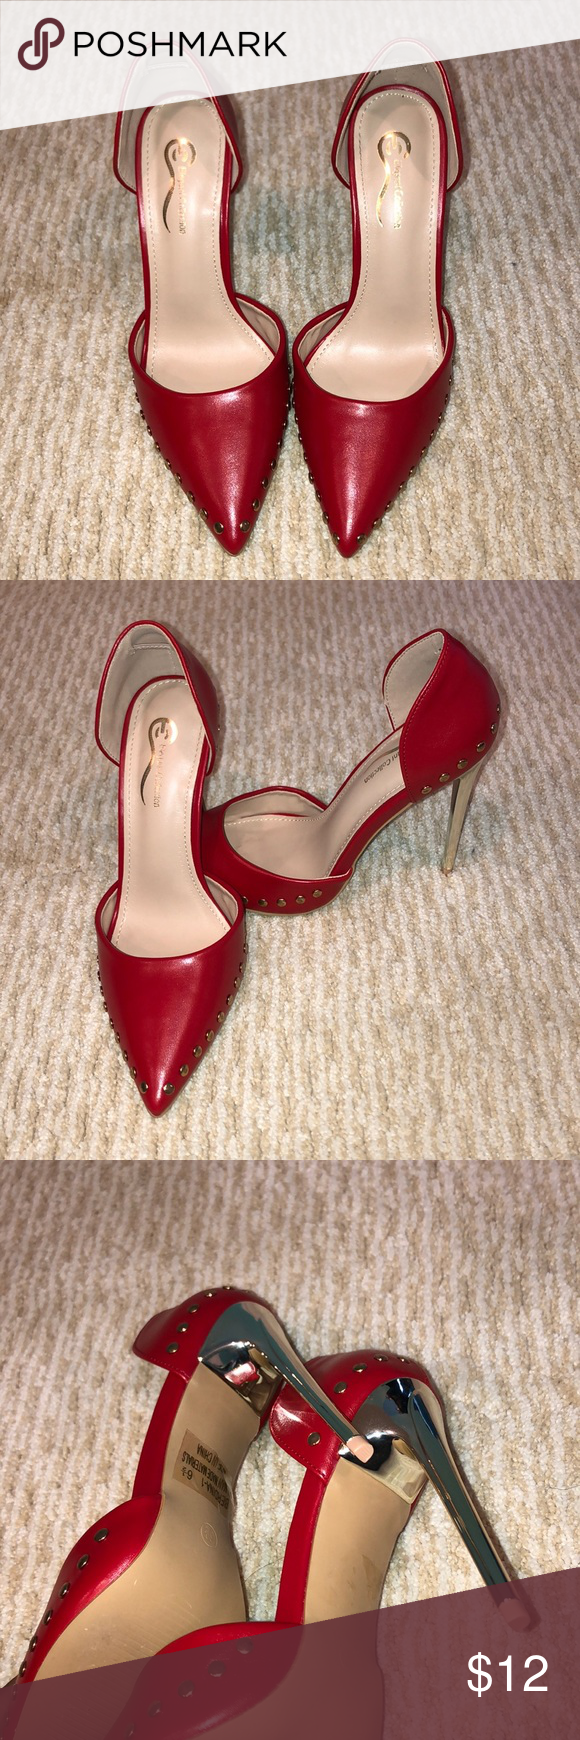 4af5b34d5f0 Red heels Red heels purchased for Sandy (from grease) costume! These ...